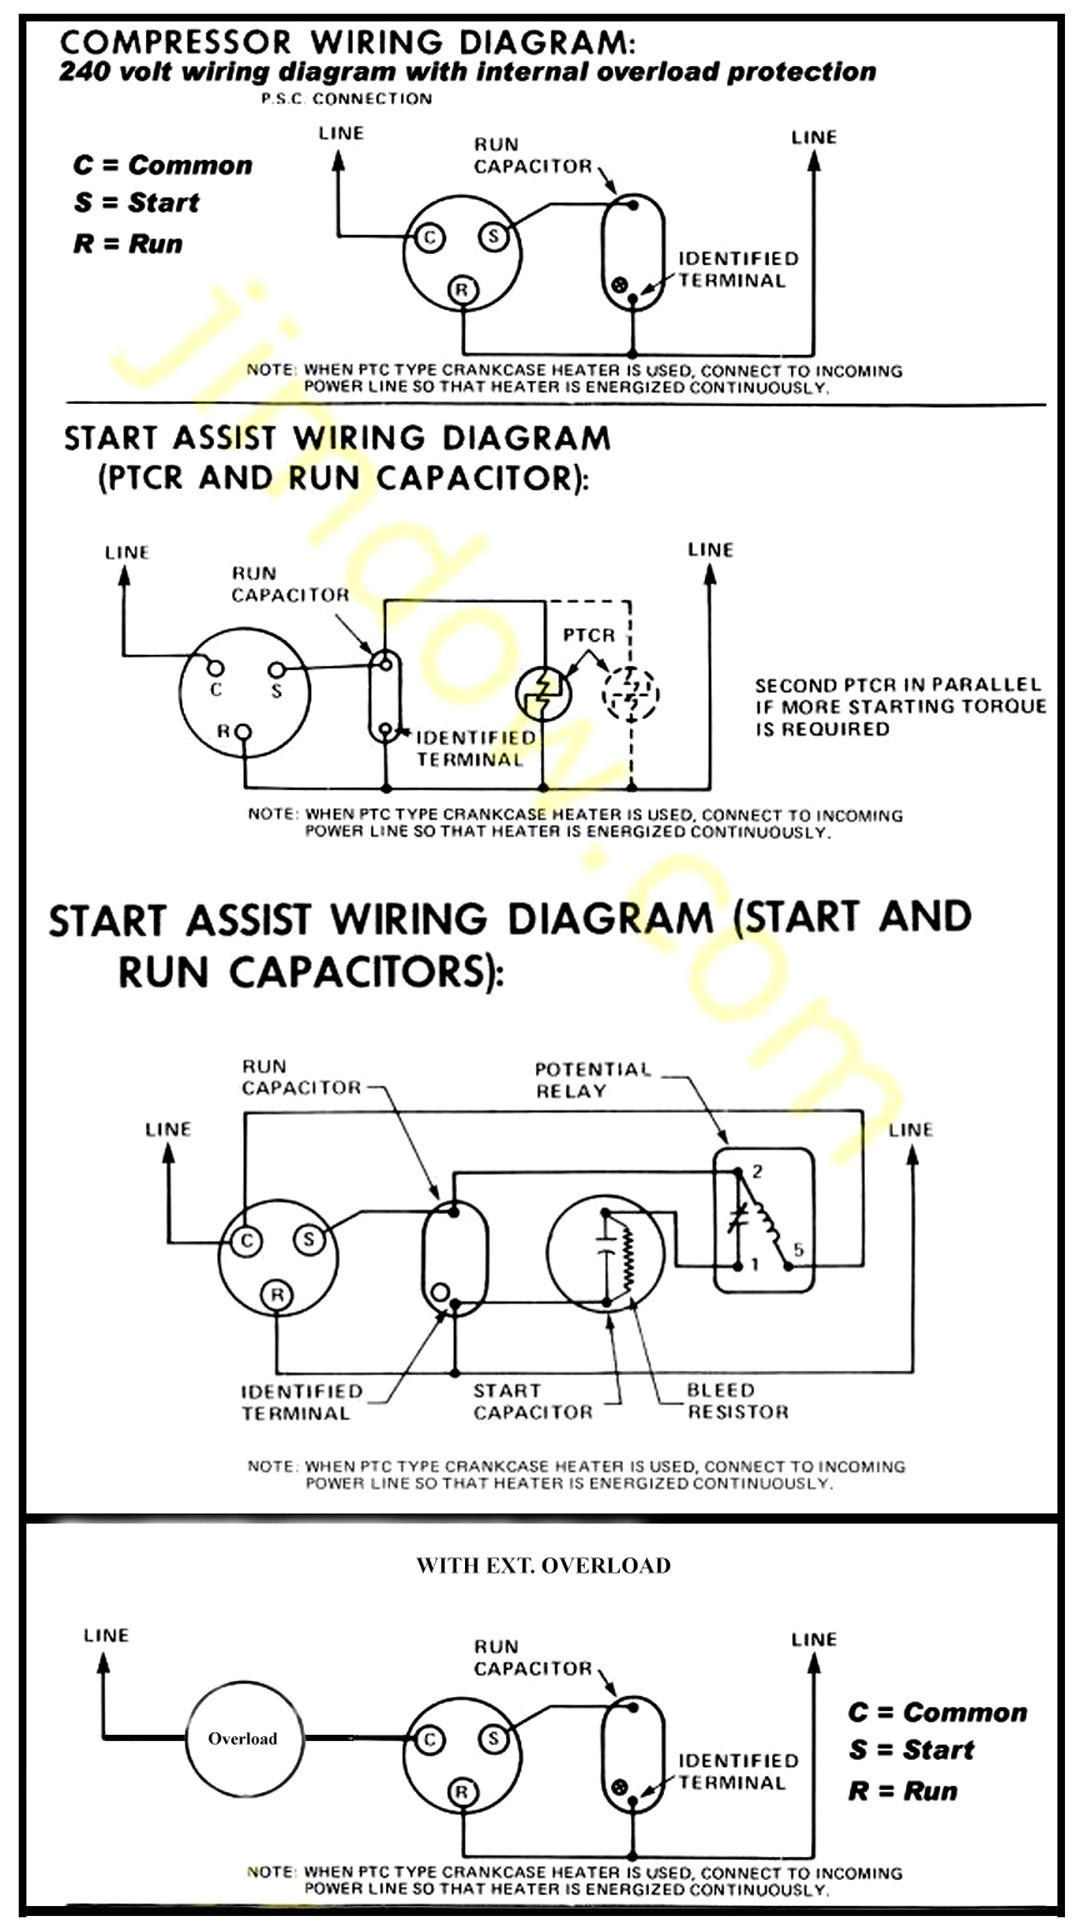 single phase compressor wiring diagram page 4 wiring diagram and compressor start relay wiring teseh compressor wiring diagram 115v wire center u2022 rh masinisa co single phase compressor wiring diagram